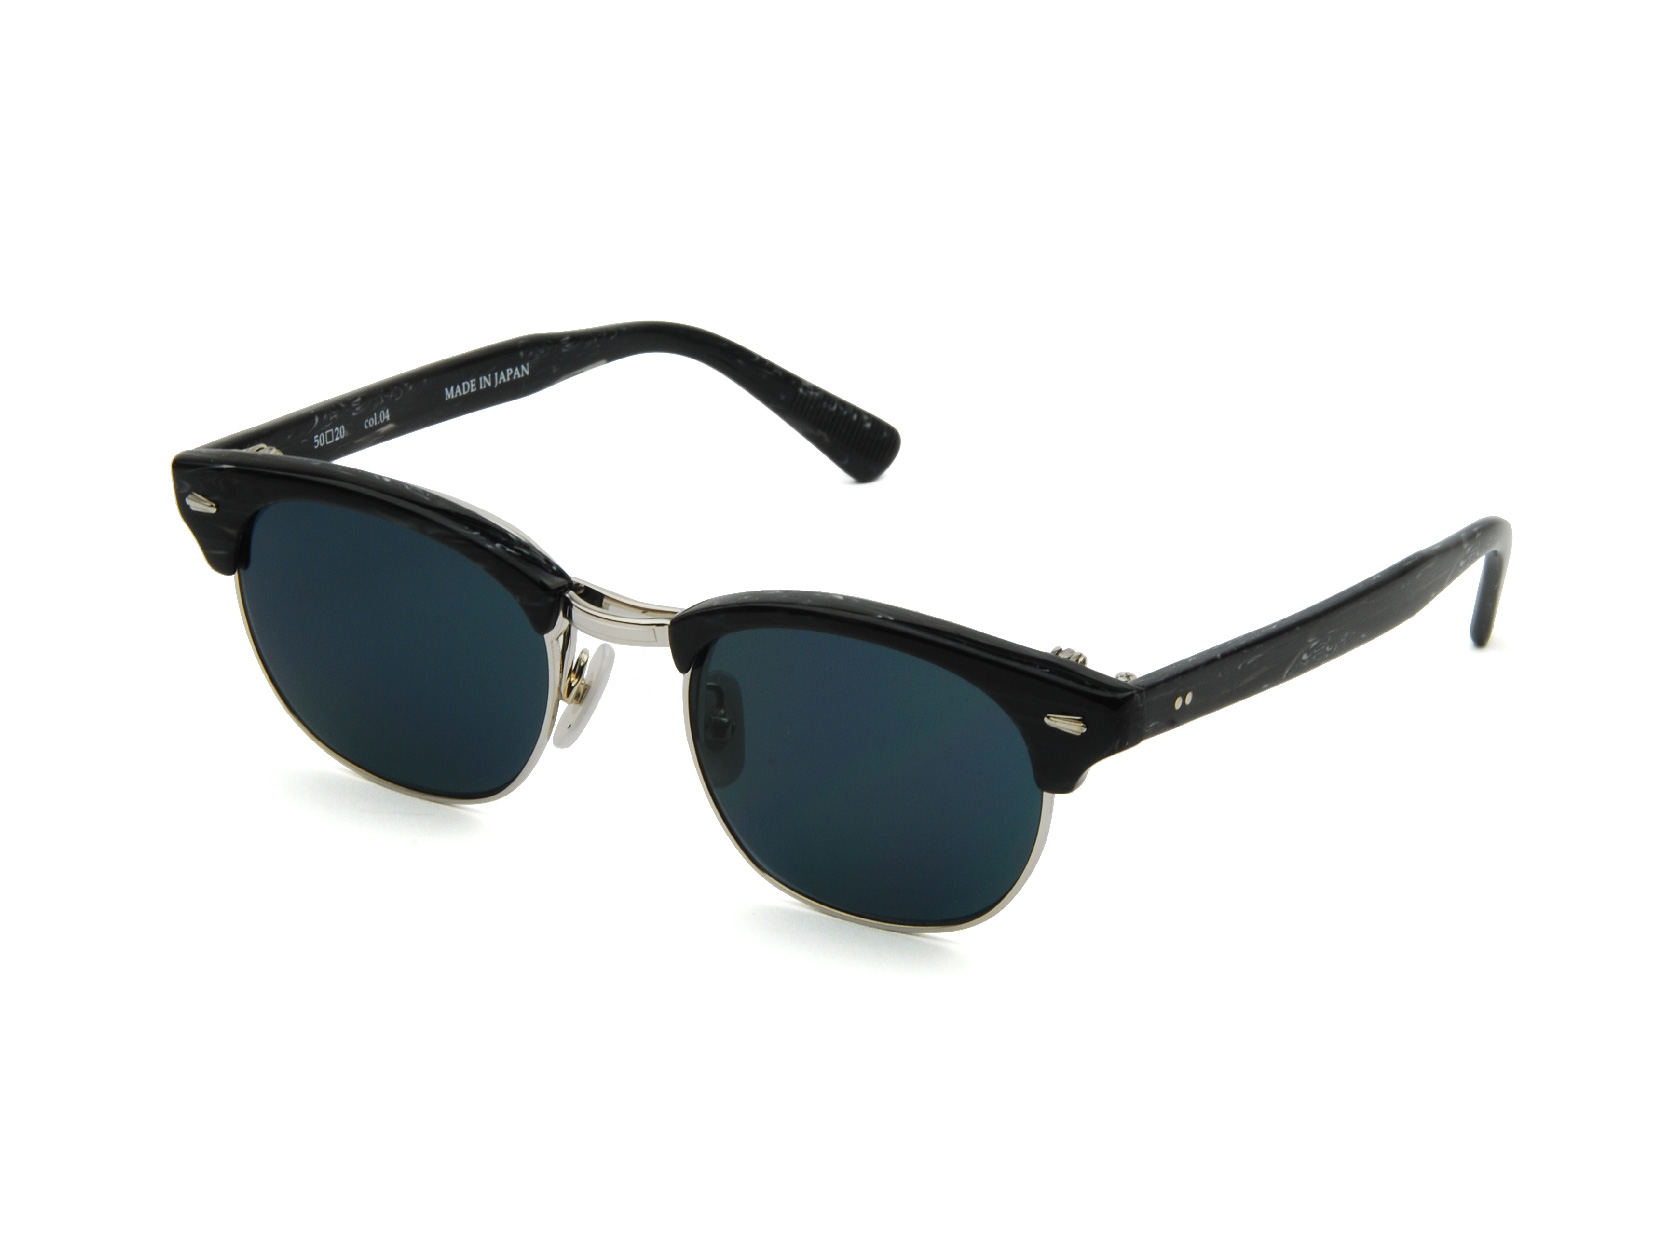 Taylor S04 ( Sold Out )